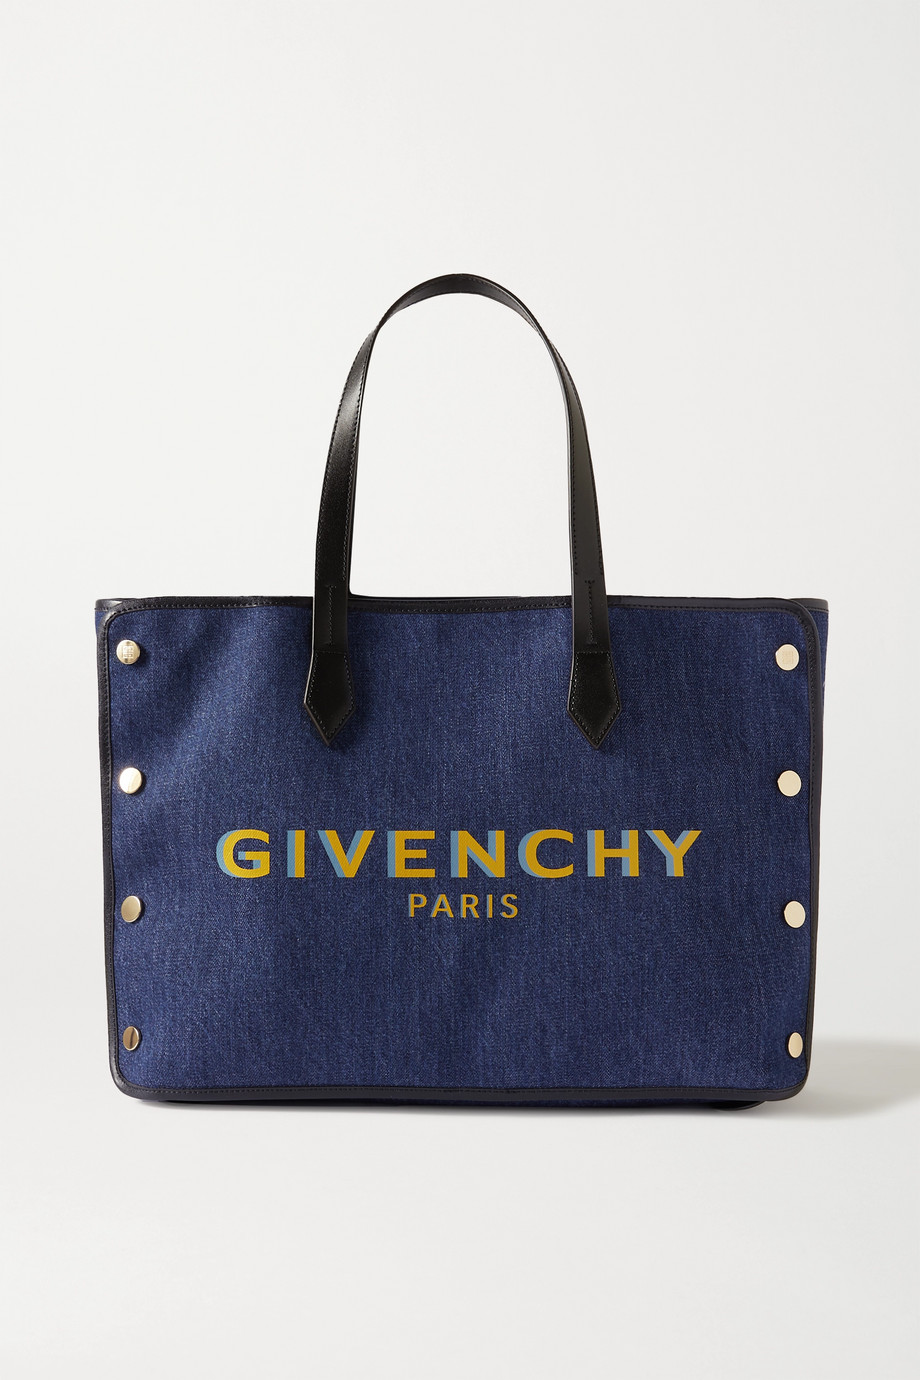 Givenchy Bond leather-trimmed printed denim tote